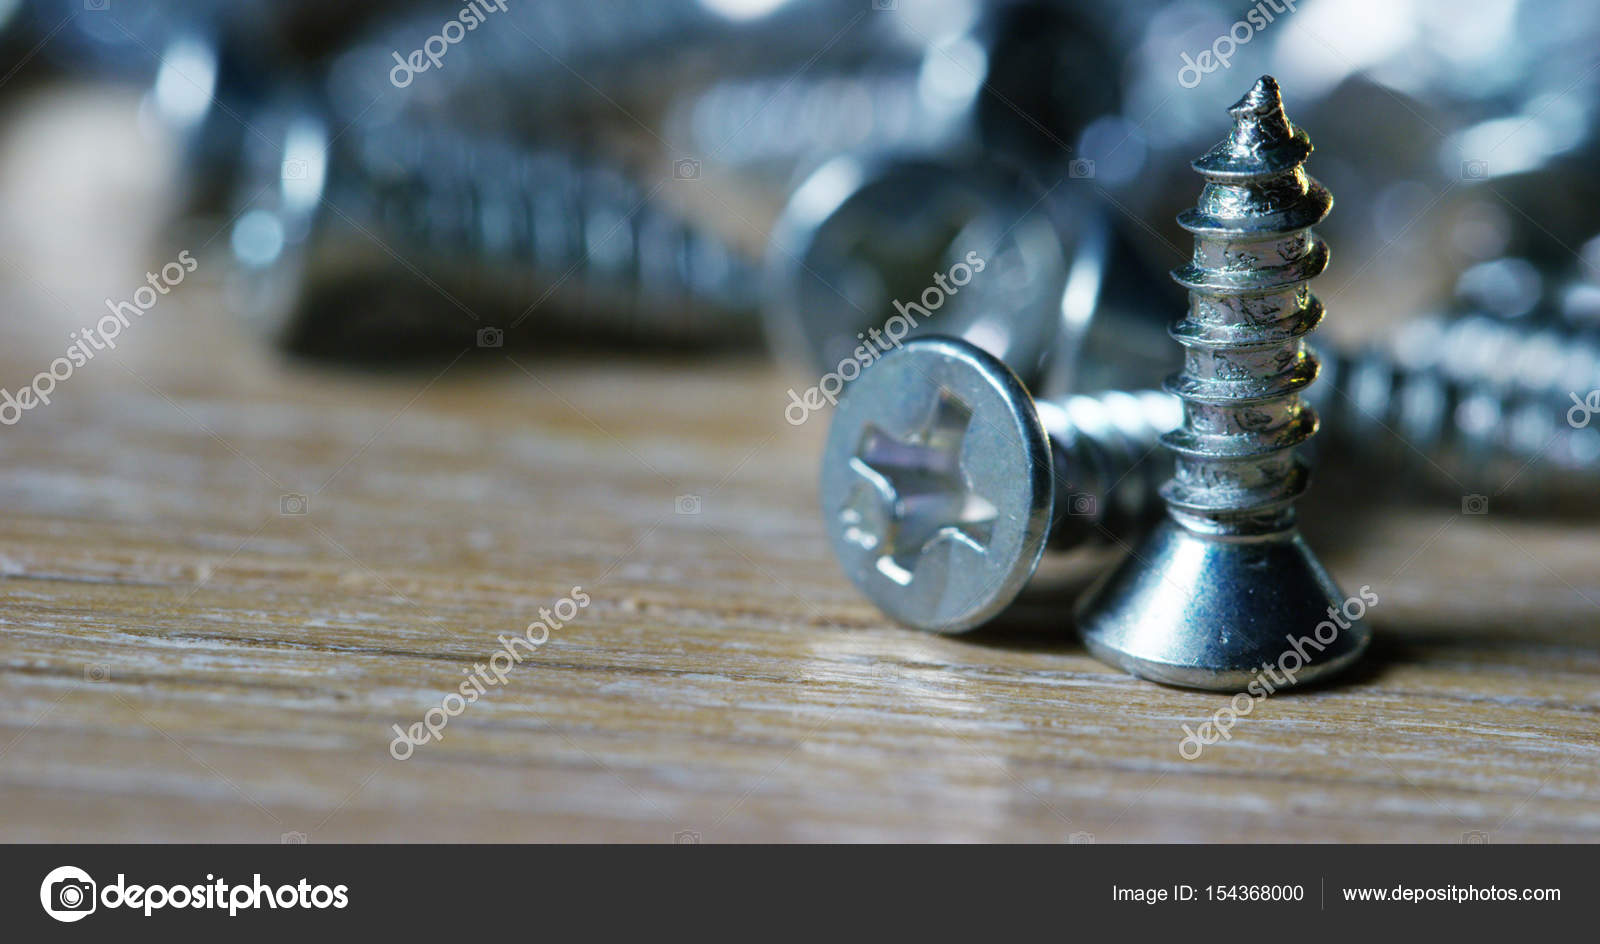 Miraculous Bolts And Screws On A Wooden Work Bench Concept Of Diy And Squirreltailoven Fun Painted Chair Ideas Images Squirreltailovenorg